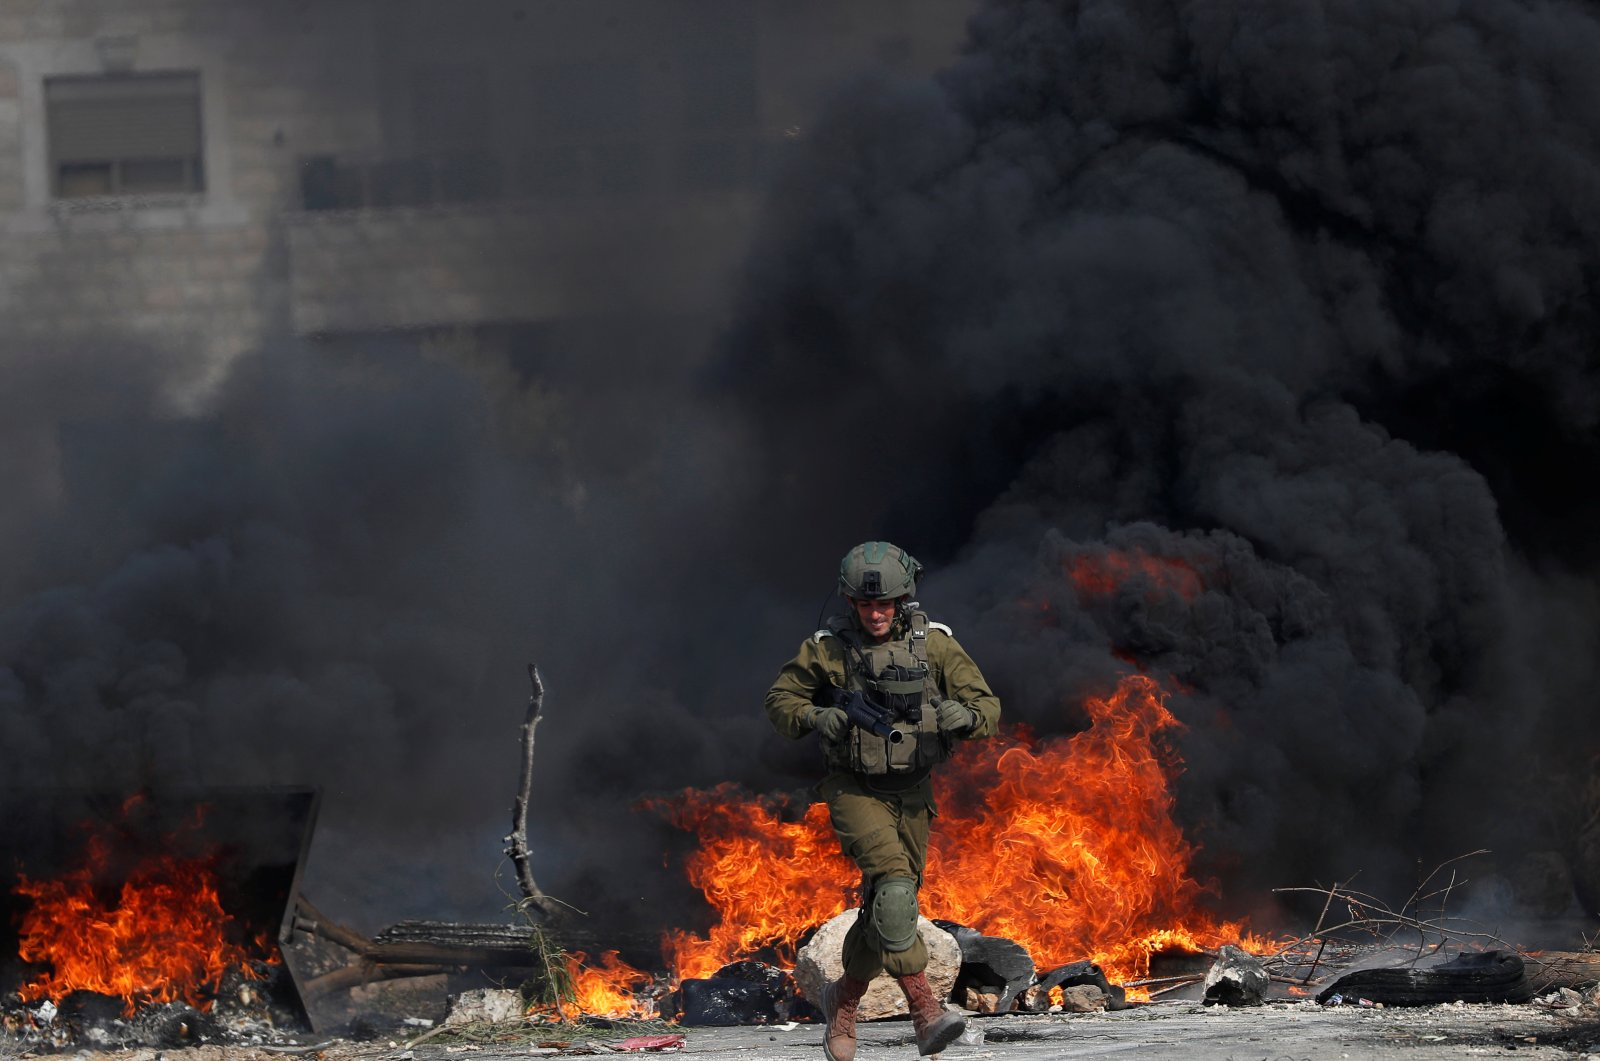 An Israeli soldier runs in front of burning tires during a Palestinian protest against Jewish settlements, in Beit Dajan in the Israeli-occupied West Bank, Oct. 30, 2020. (Reuters Photo)